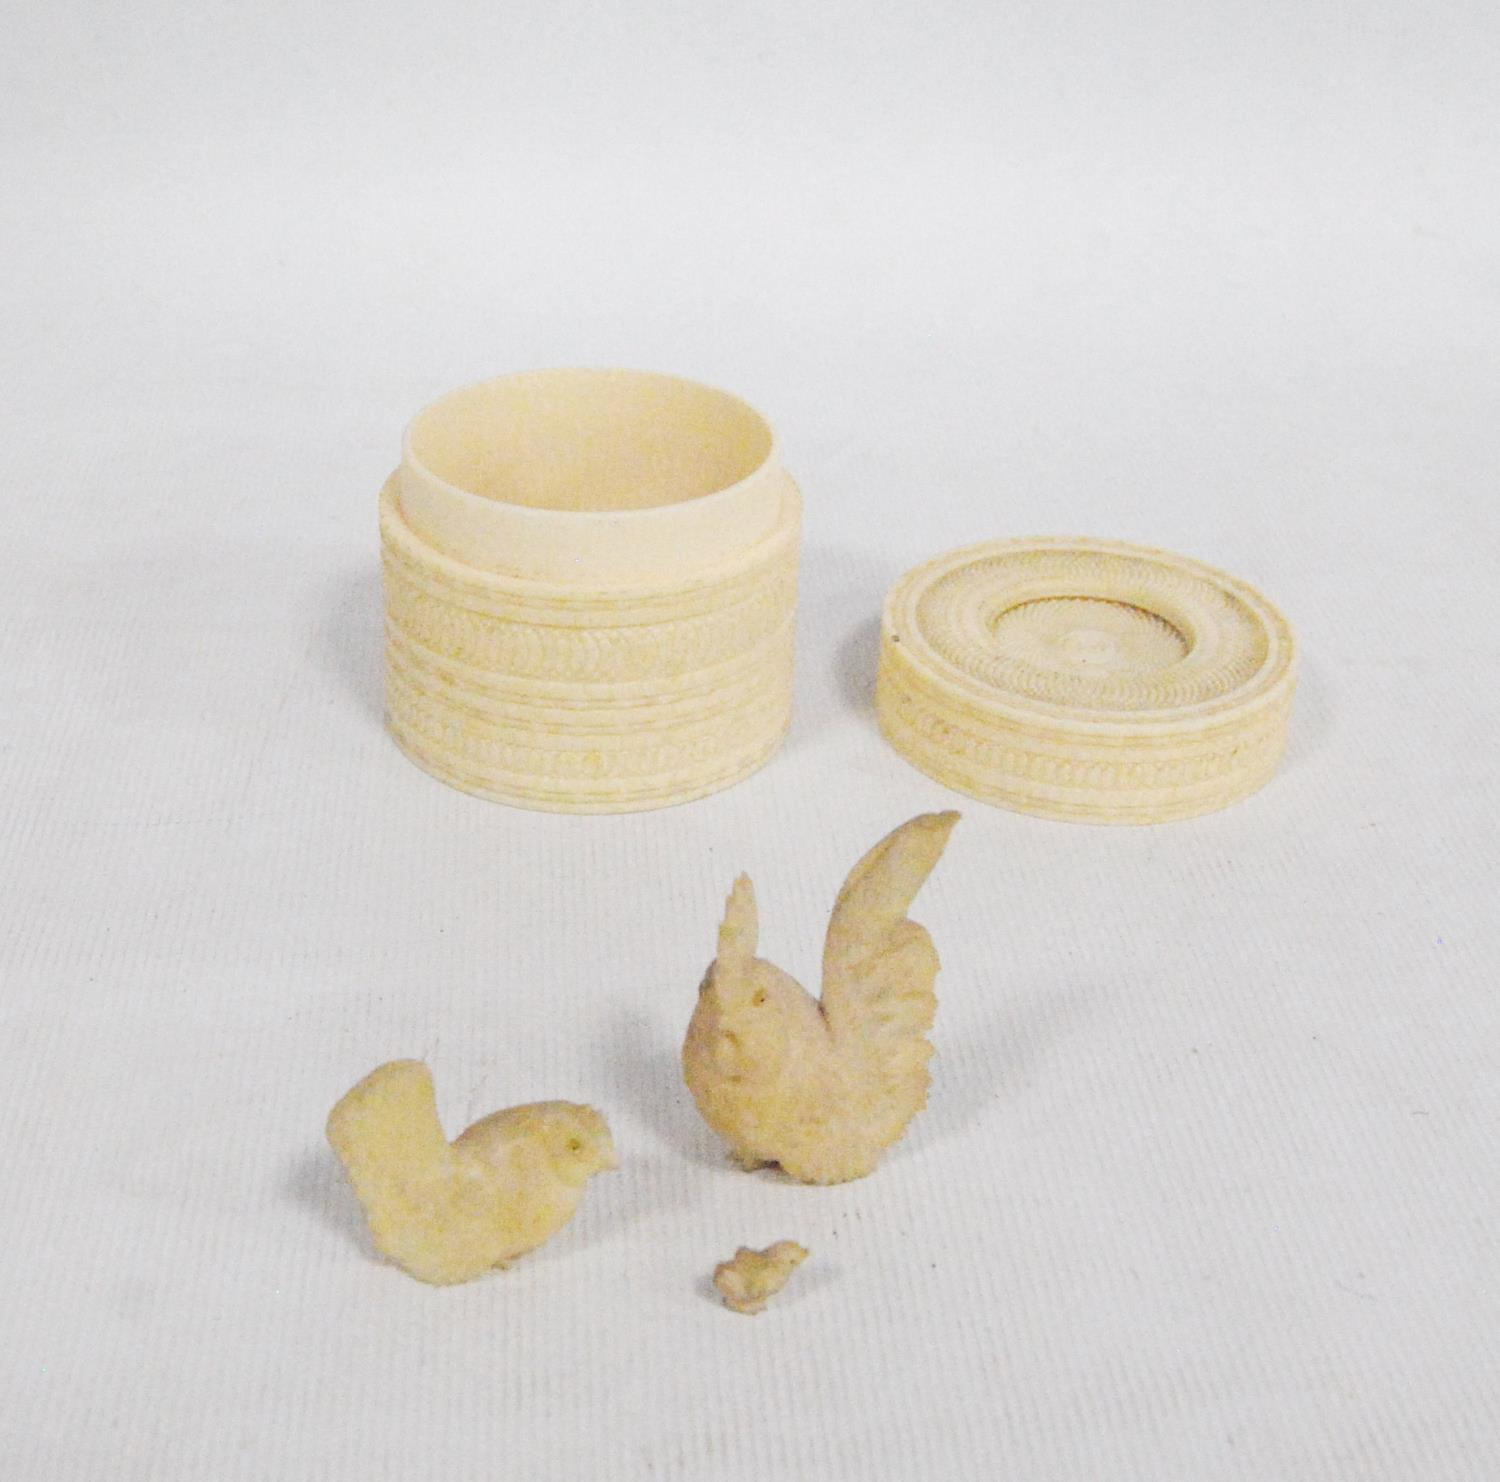 19th century Japanese carved ivory basket and lid, 5.5cm diameter and 4.5cm high, also a carved - Image 3 of 3